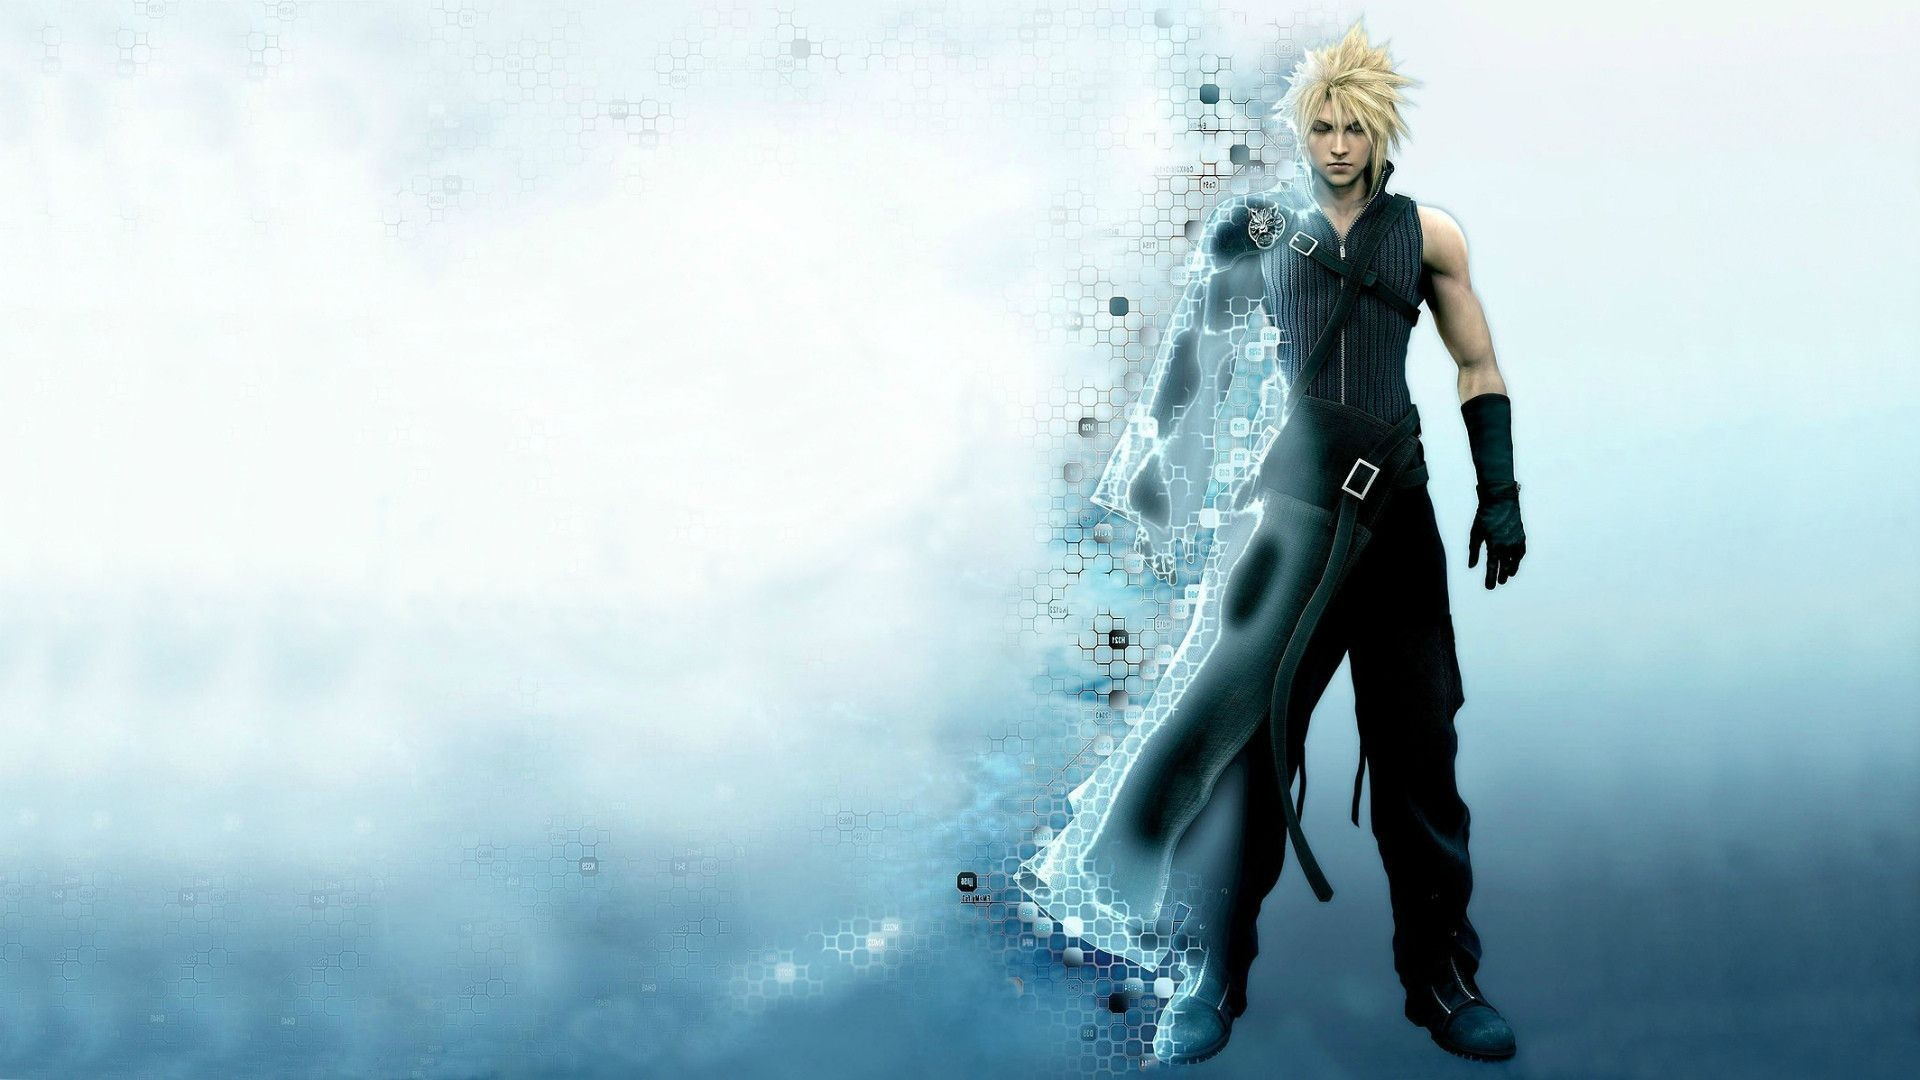 1920x1080 Final Fantasy VII HD Wallpapers